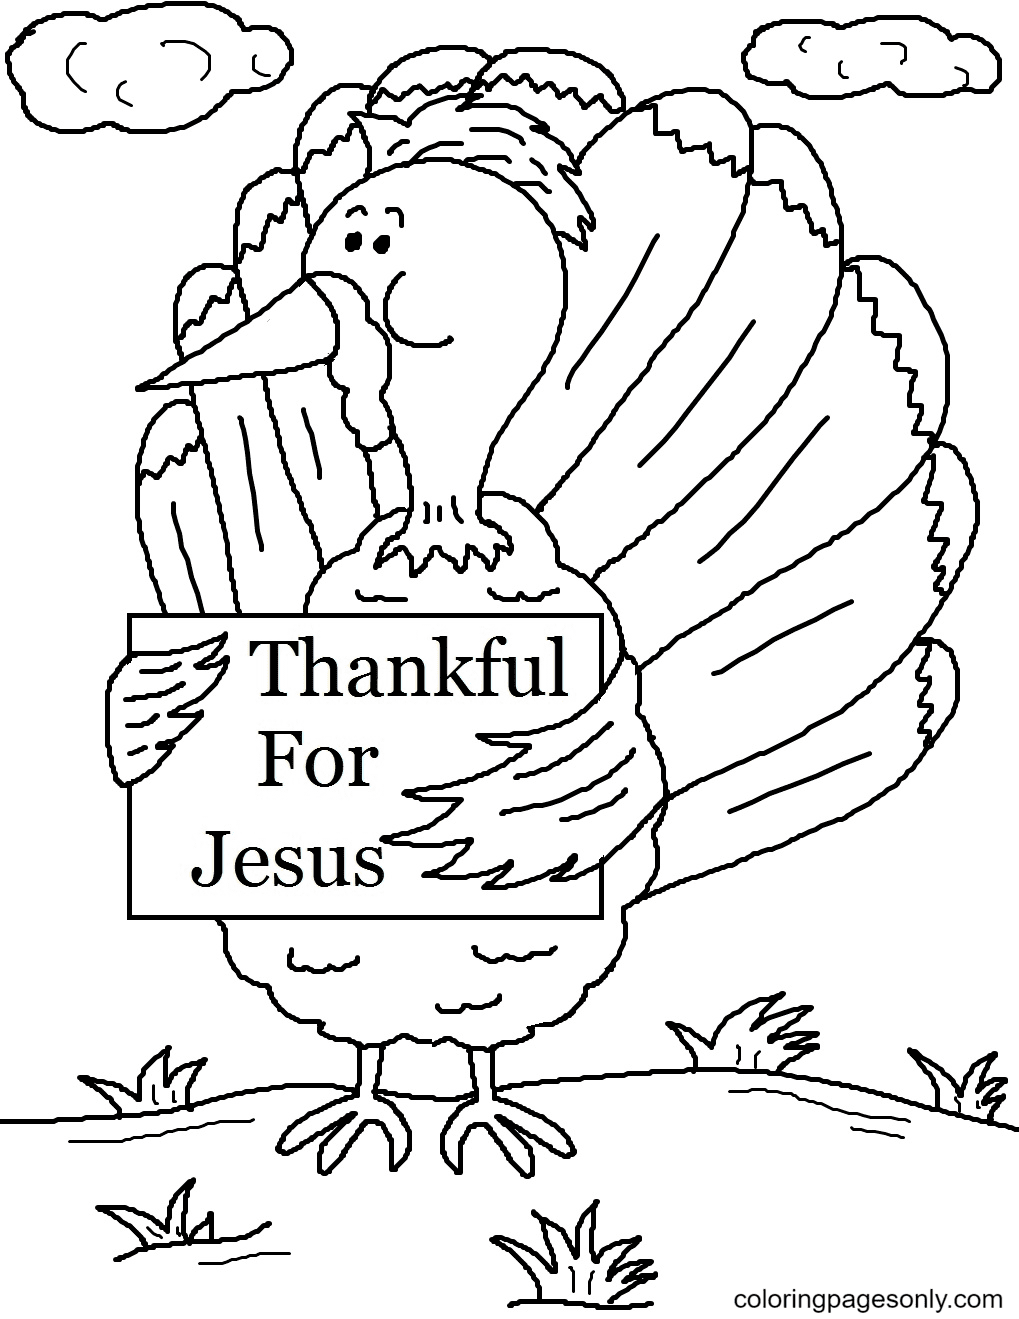 Church Thanksgiving Coloring Page